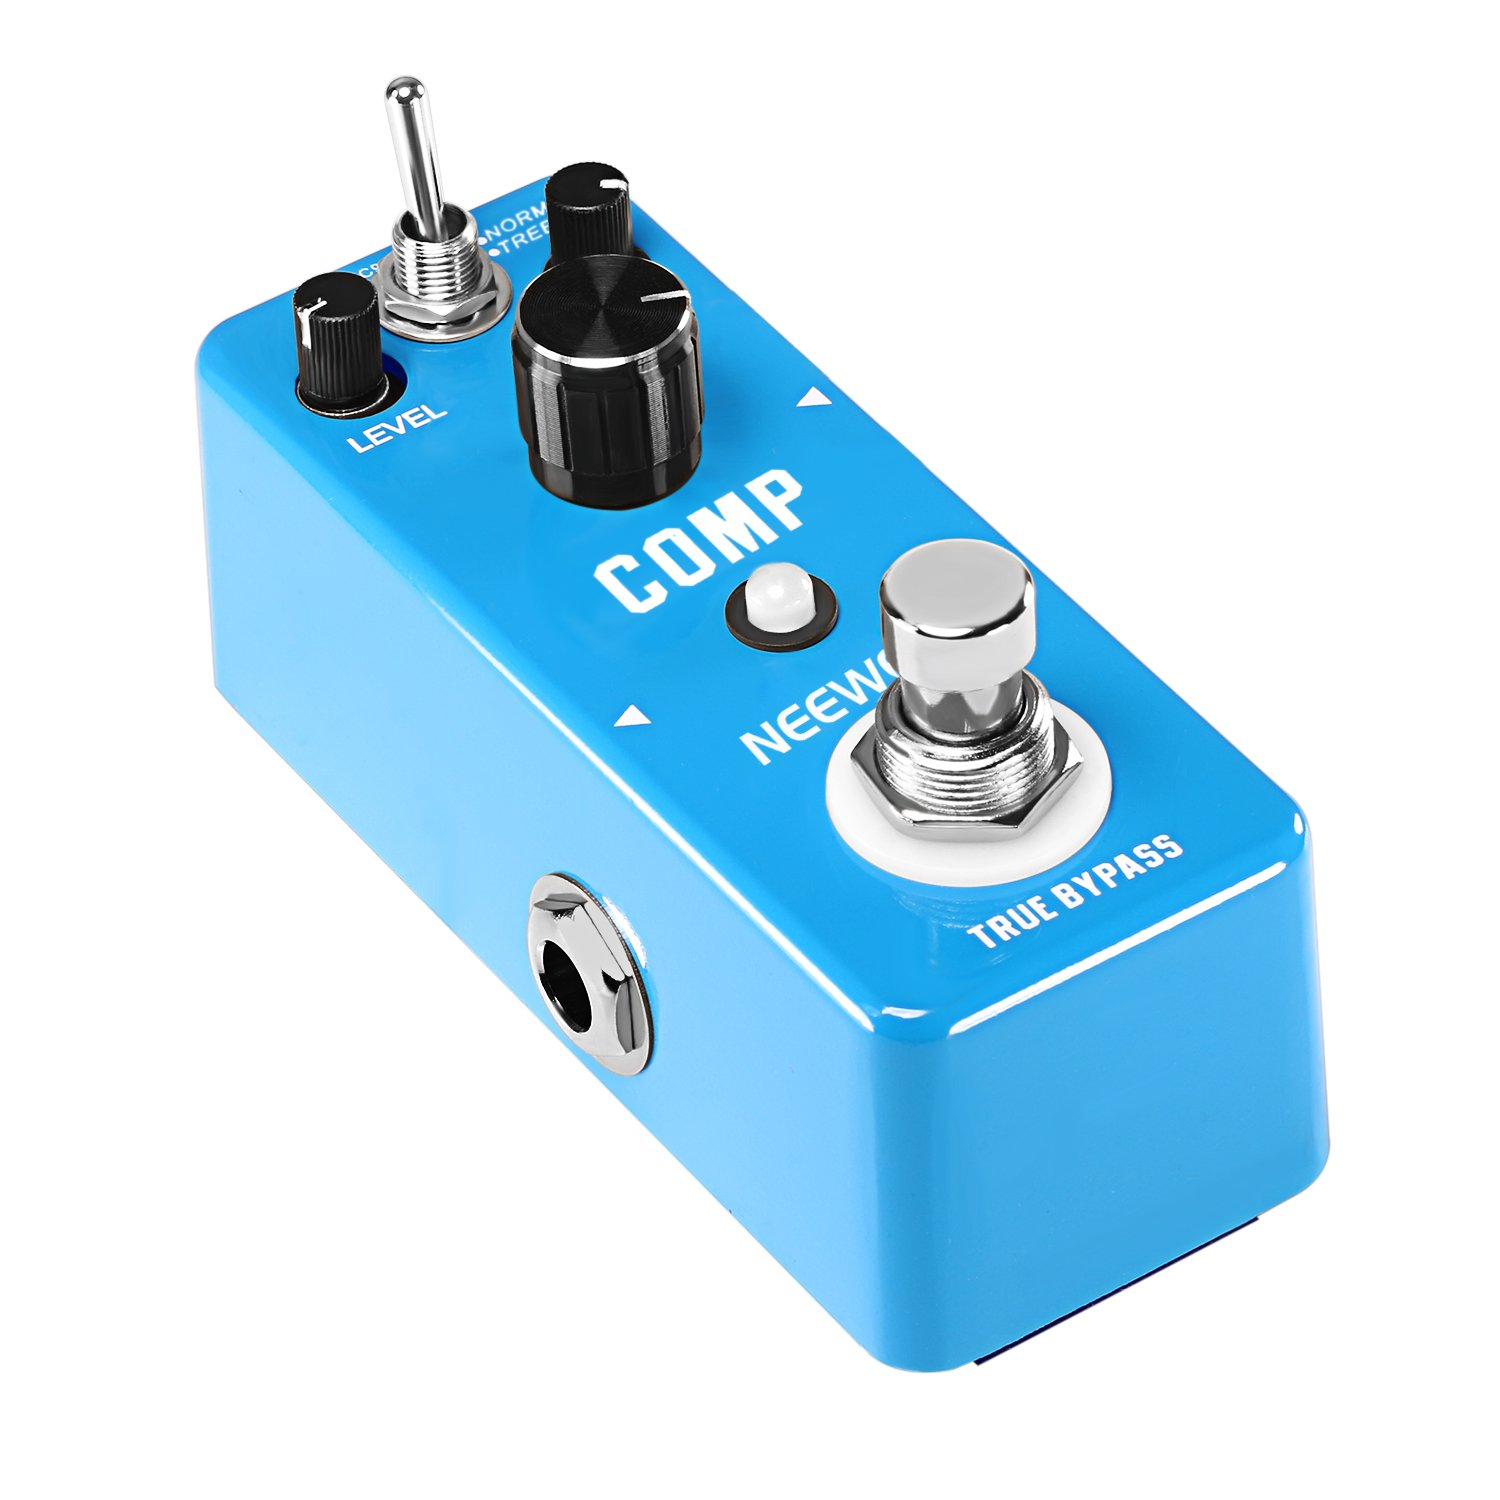 Neewer Mini Compressor Pedal Ultimate Comp Guitar Effect Pedal, Aluminum Alloy Optical Compressor with 1/4-inch Mono Audio Jack Normal, Treble Compression Modes for Guitarists Play on Stage 40089319